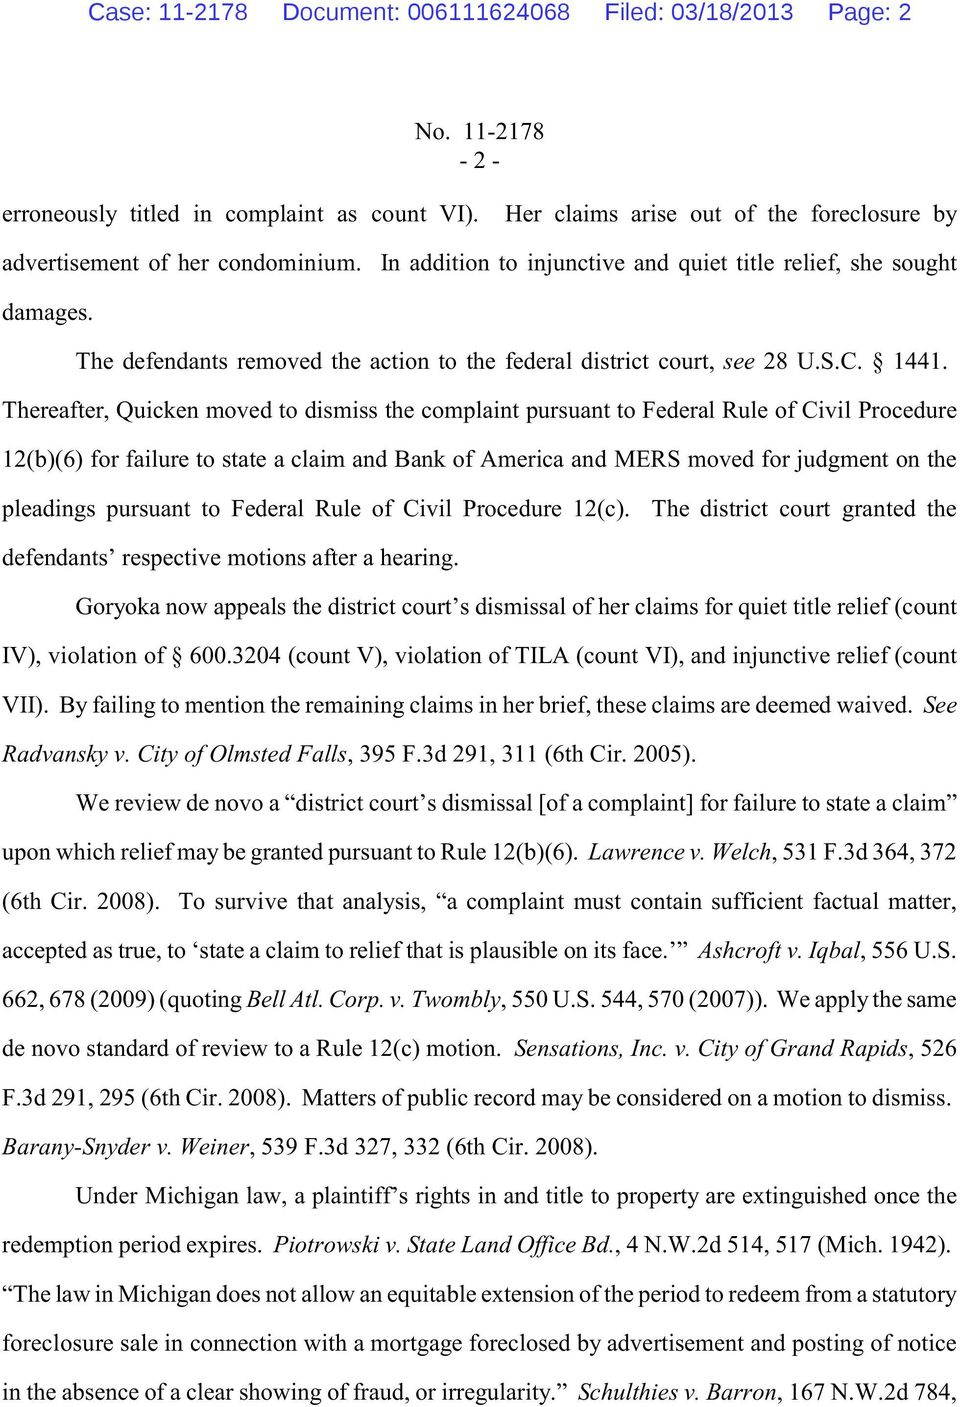 Thereafter, Quicken moved to dismiss the complaint pursuant to Federal Rule of Civil Procedure 12(b(6 for failure to state a claim and Bank of America and MERS moved for judgment on the pleadings